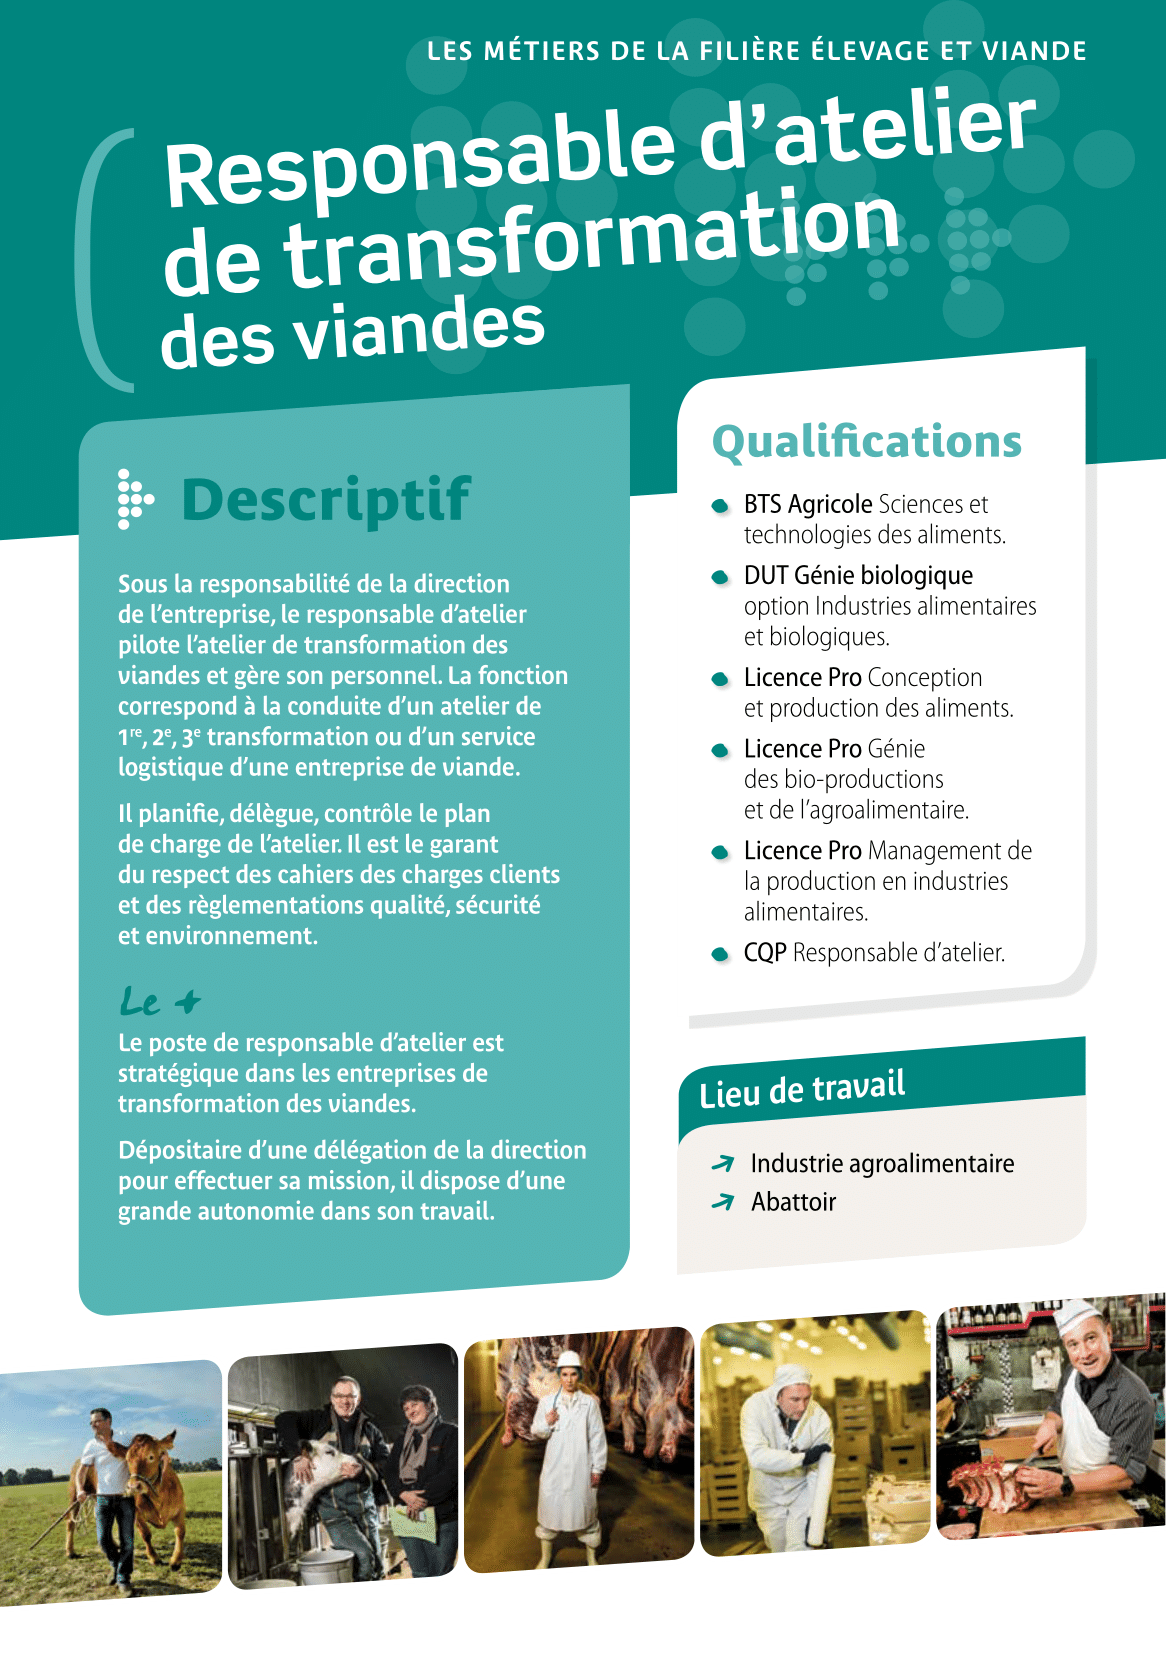 Responsable d'atelier de transformation des viandes